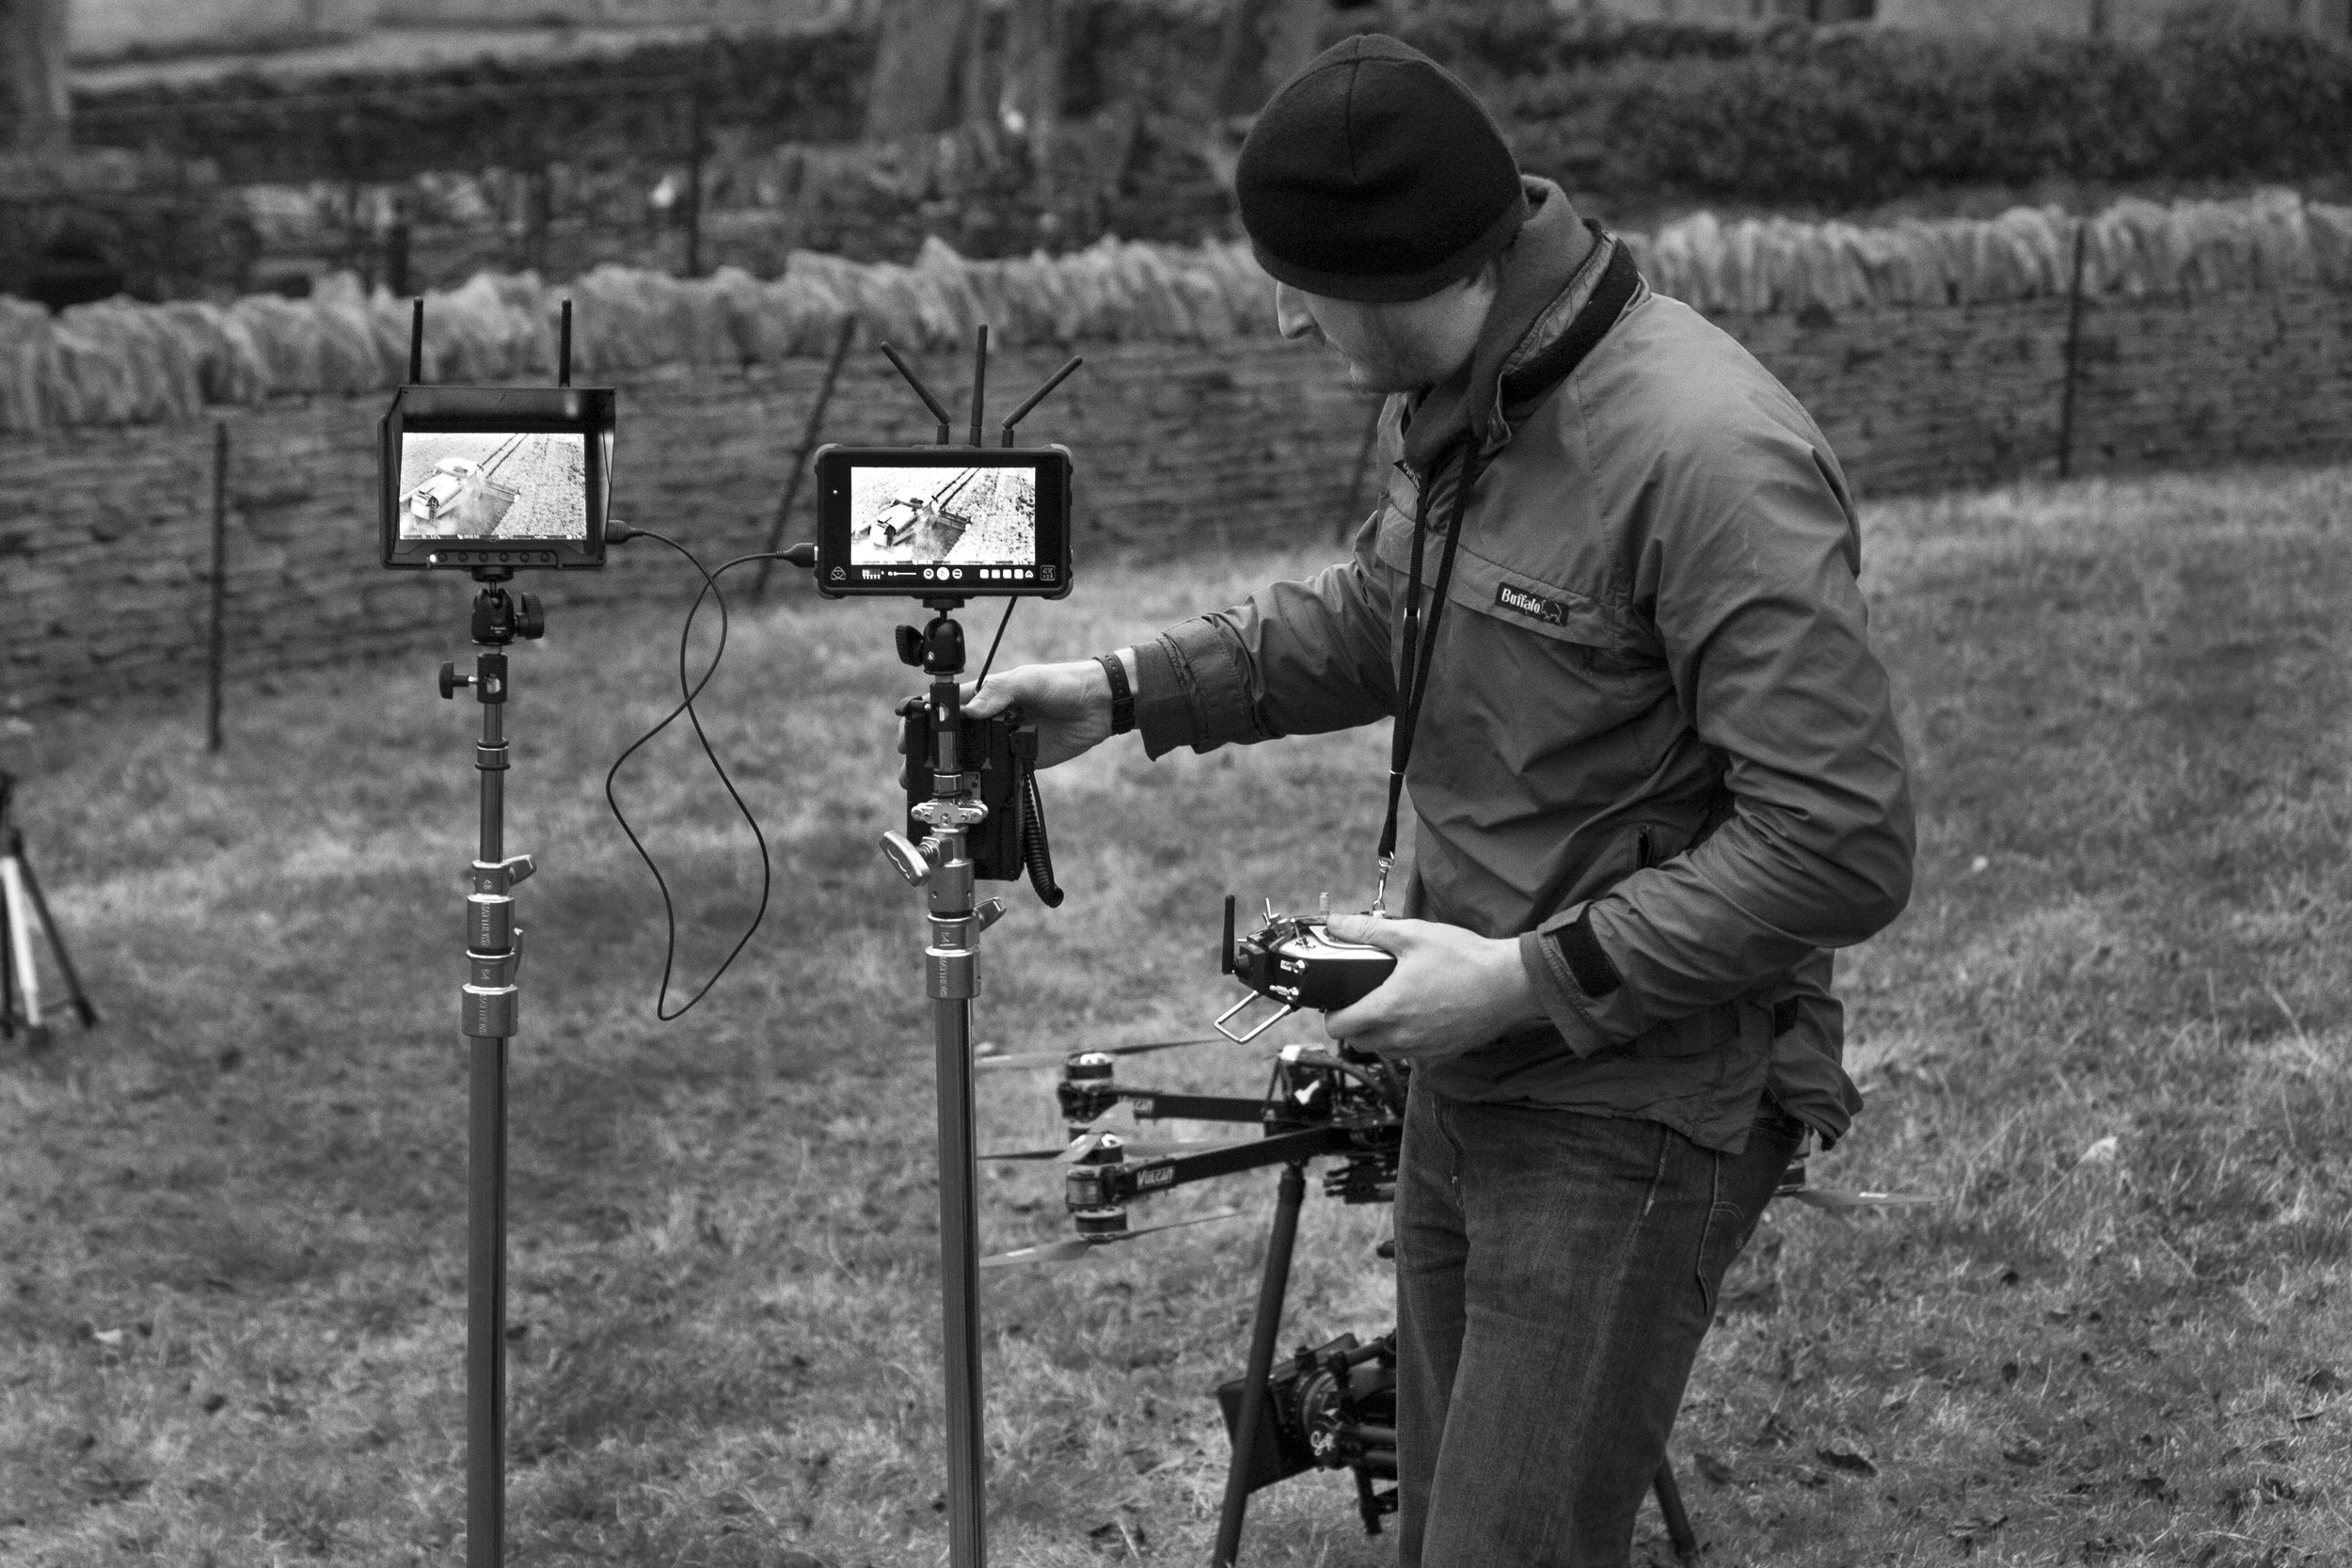 Contact Us... - If you would like to know more about what we do or would like some guidance on the process of aerial filming, we would be happy to answer any questions or enquiries you may have.Tel - +44 (0) 7554 015969Email - info@swiftcine.com